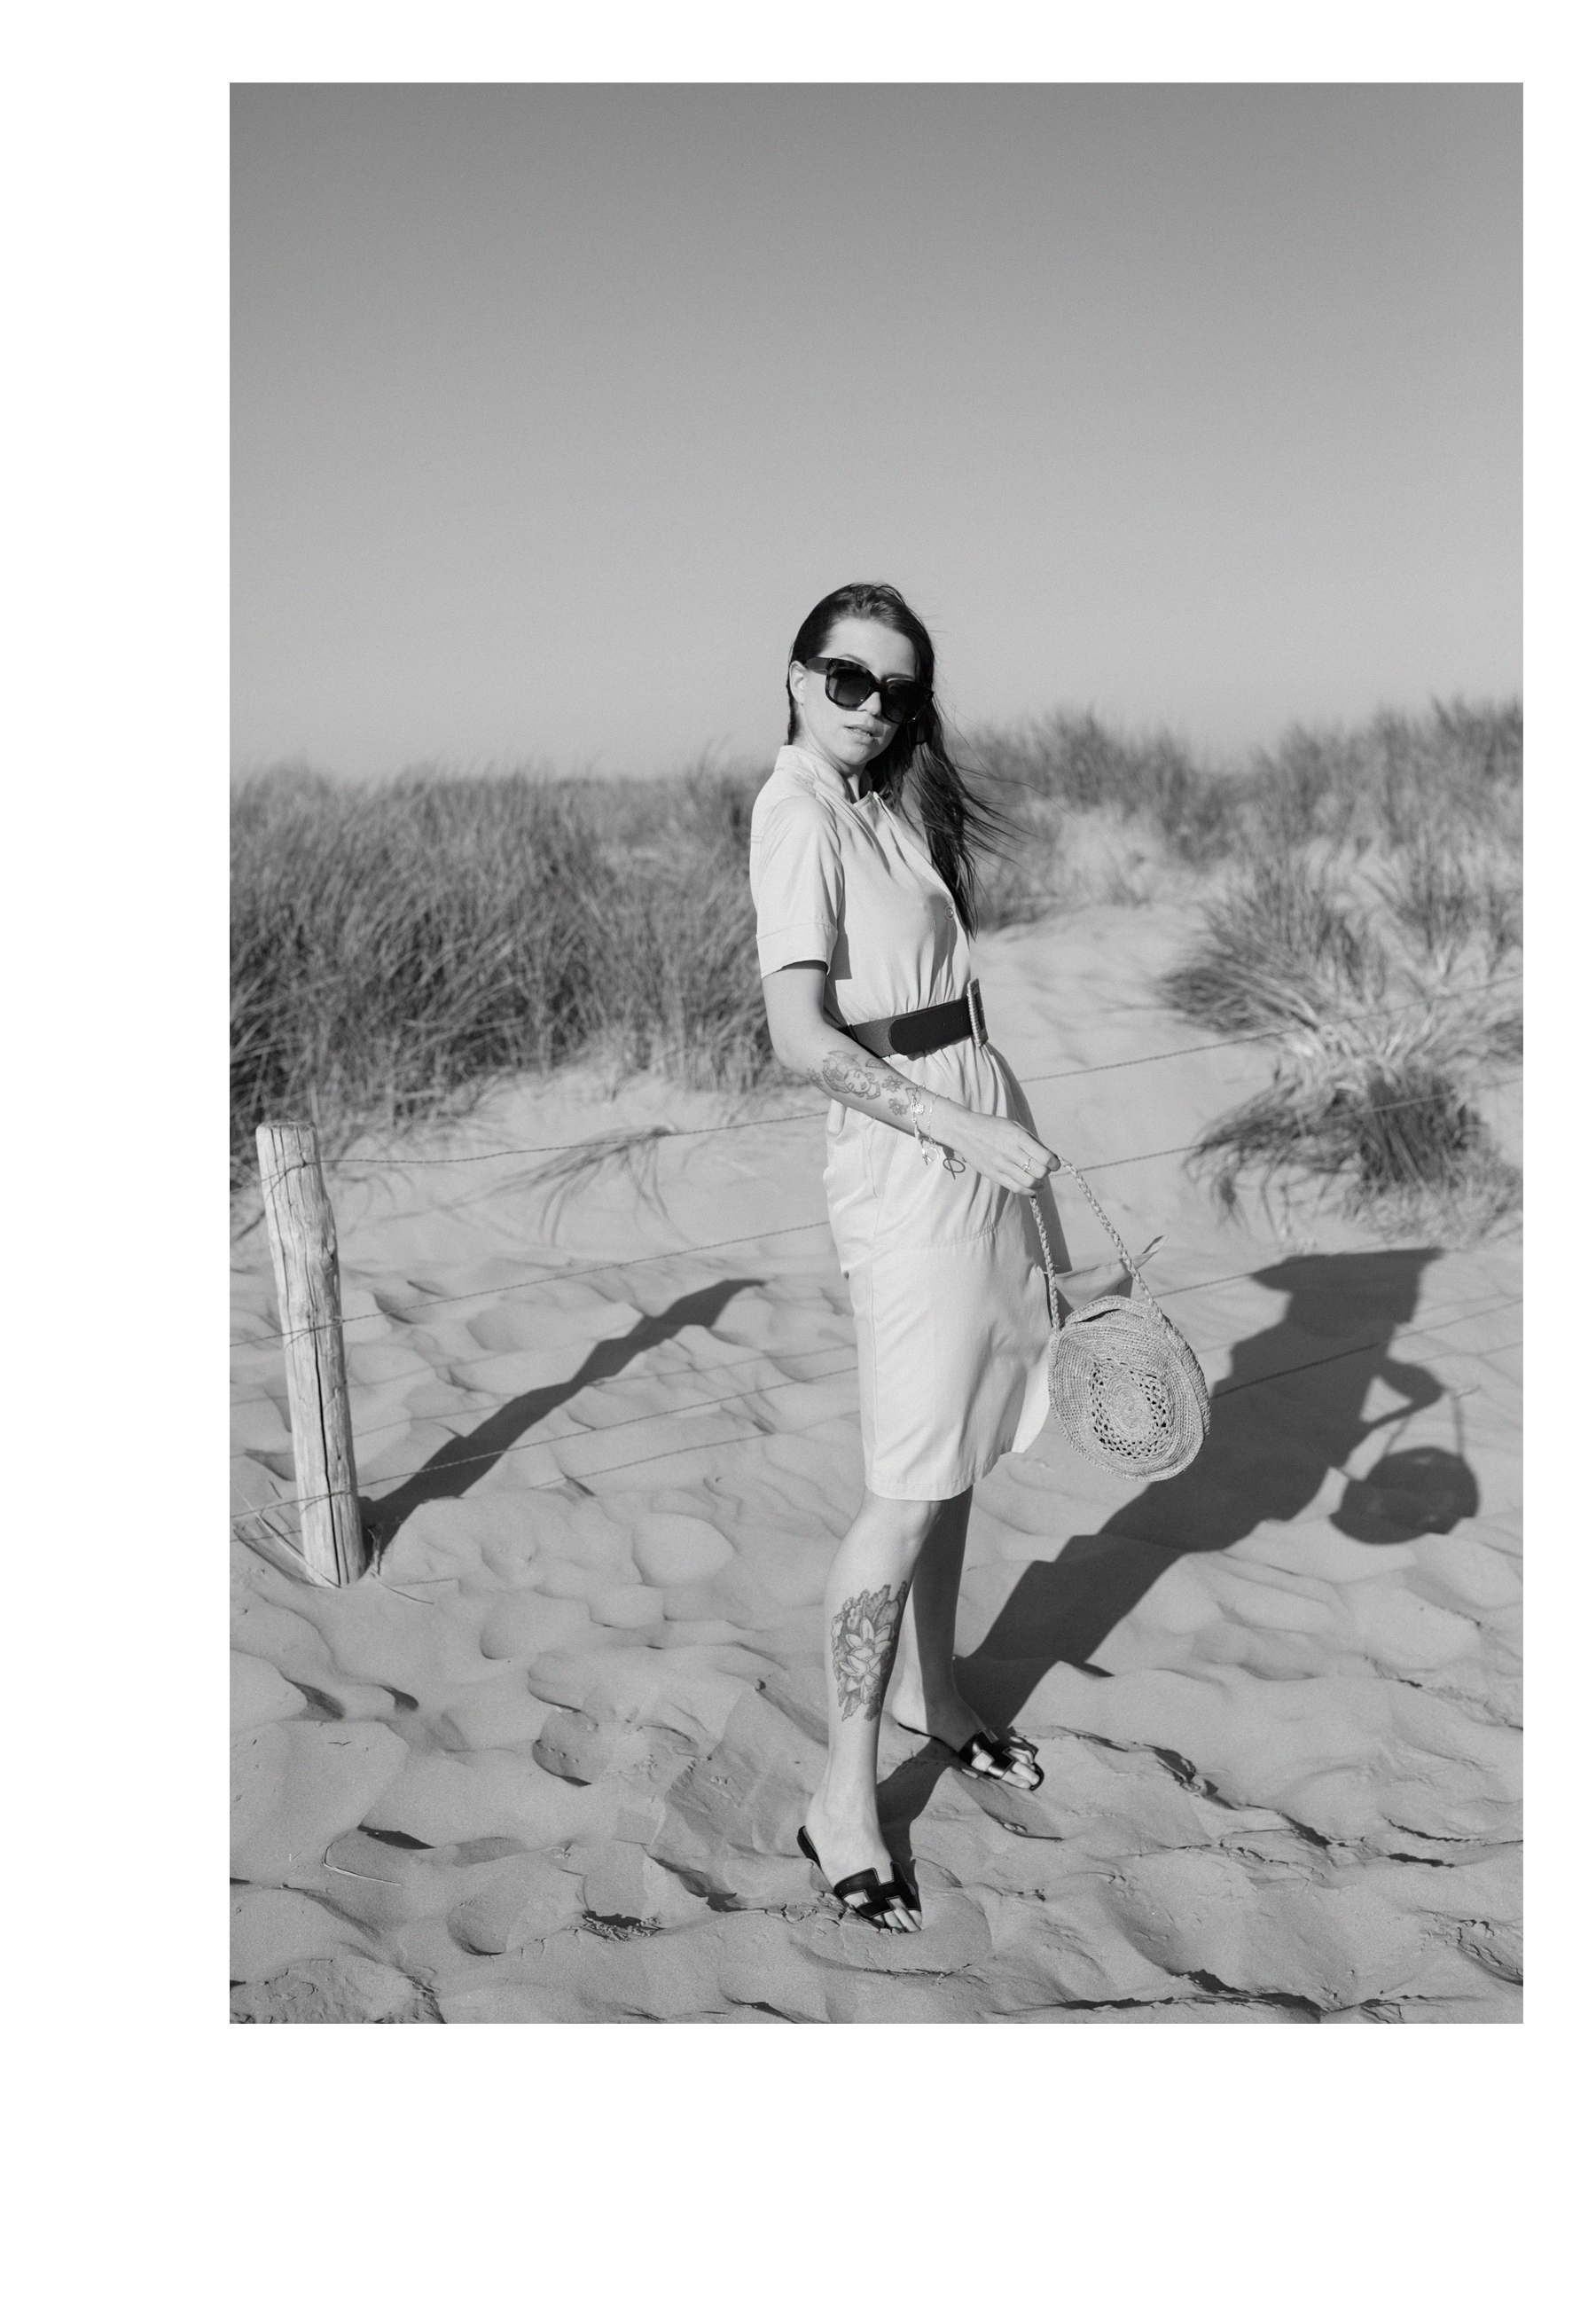 beach holland bloemendaal safari city dress outfit couple coupleblog couplegoals couplestyle romance love vintage style inspo inspiration black and white photography dusseldorf catsanddogsblog ricarda schernus modeblogger styleblog max bechmann fotograf 4